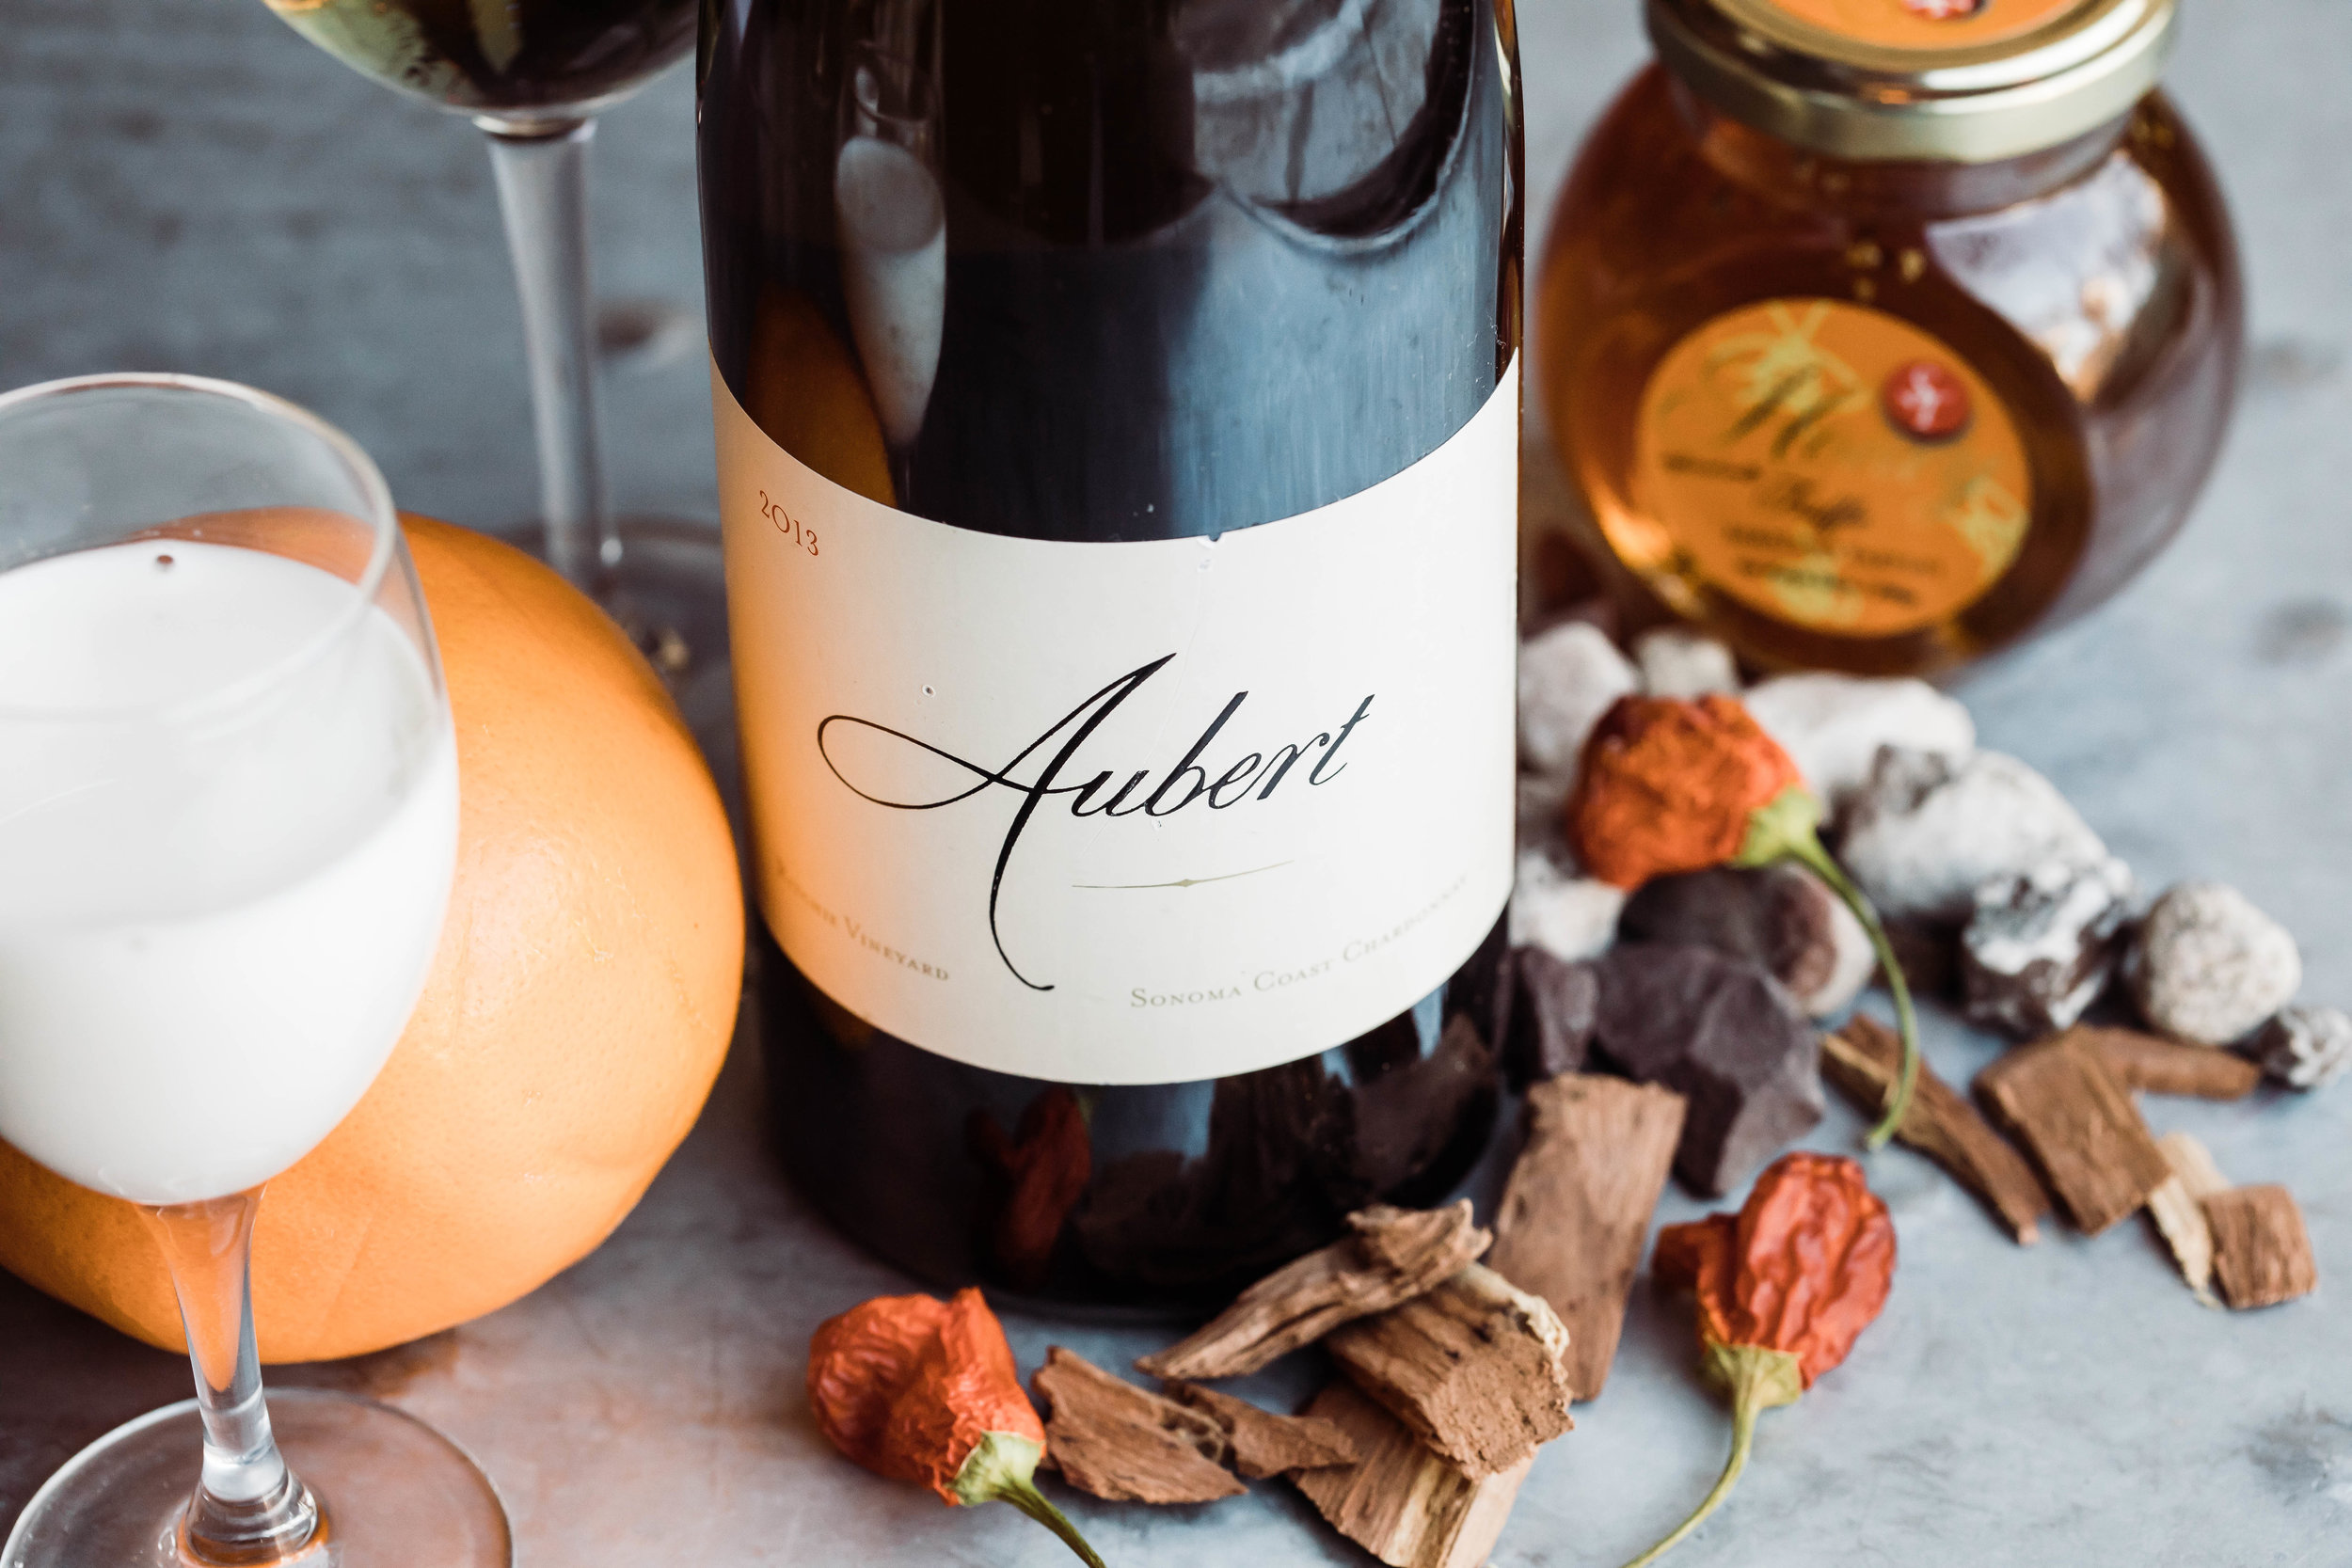 2013 Aubert Chardonnay, Ritchie Vineyard.  Notes of honey, dried flowers, citrus, oak, with a creamy finish.